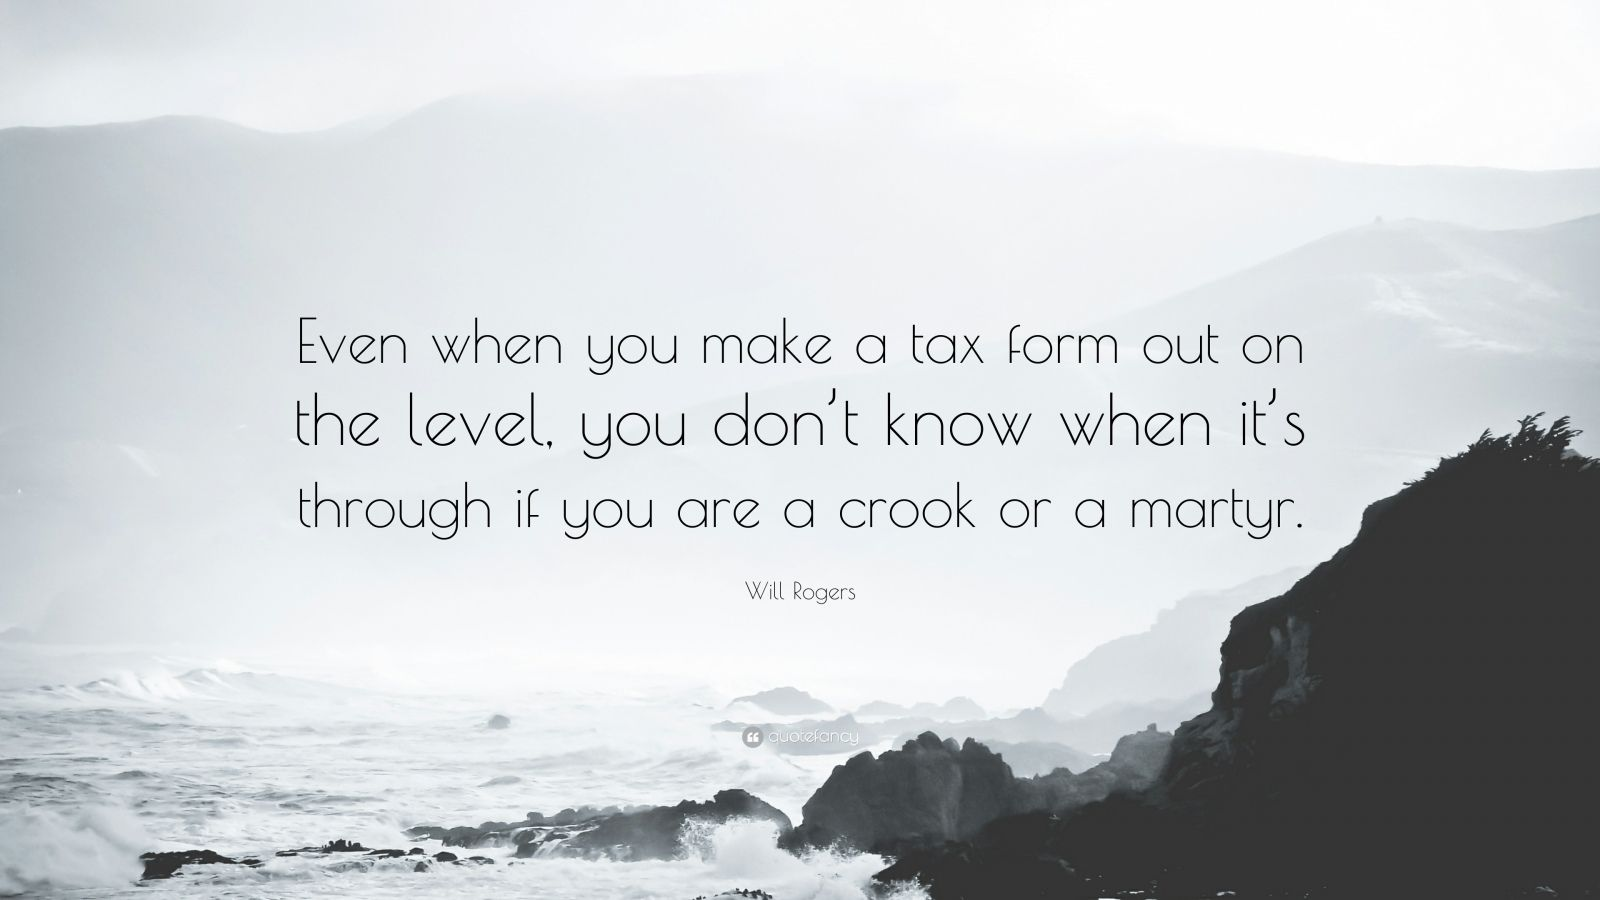 """Will Rogers Quote: """"Even when you make a tax form out on the level, you don't know when it's through if you are a crook or a martyr."""""""